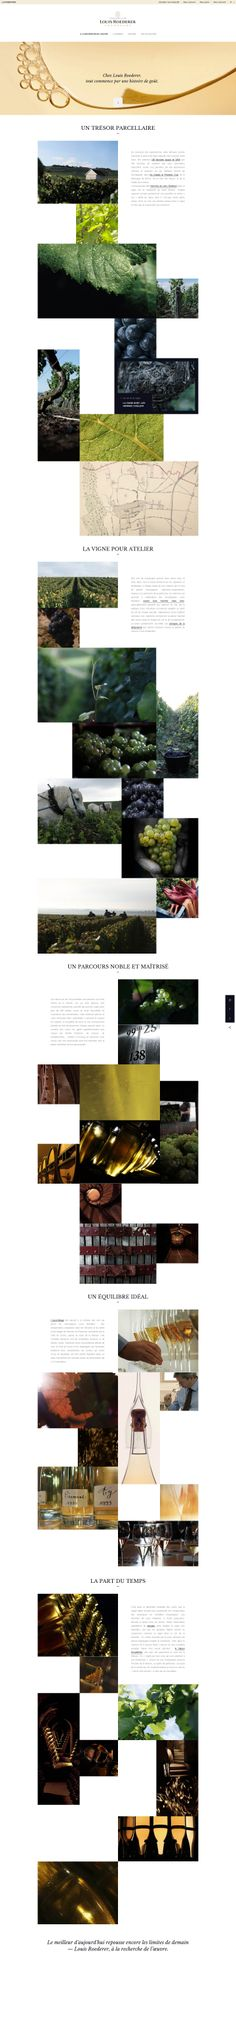 Champagne Louis Roederer Clean & beautiful web design with nice grid. Web Design Tools, Web Ui Design, Email Design, Tool Design, Graphic Design, Great Website Design, Website Design Layout, Web Layout, Roederer Champagne